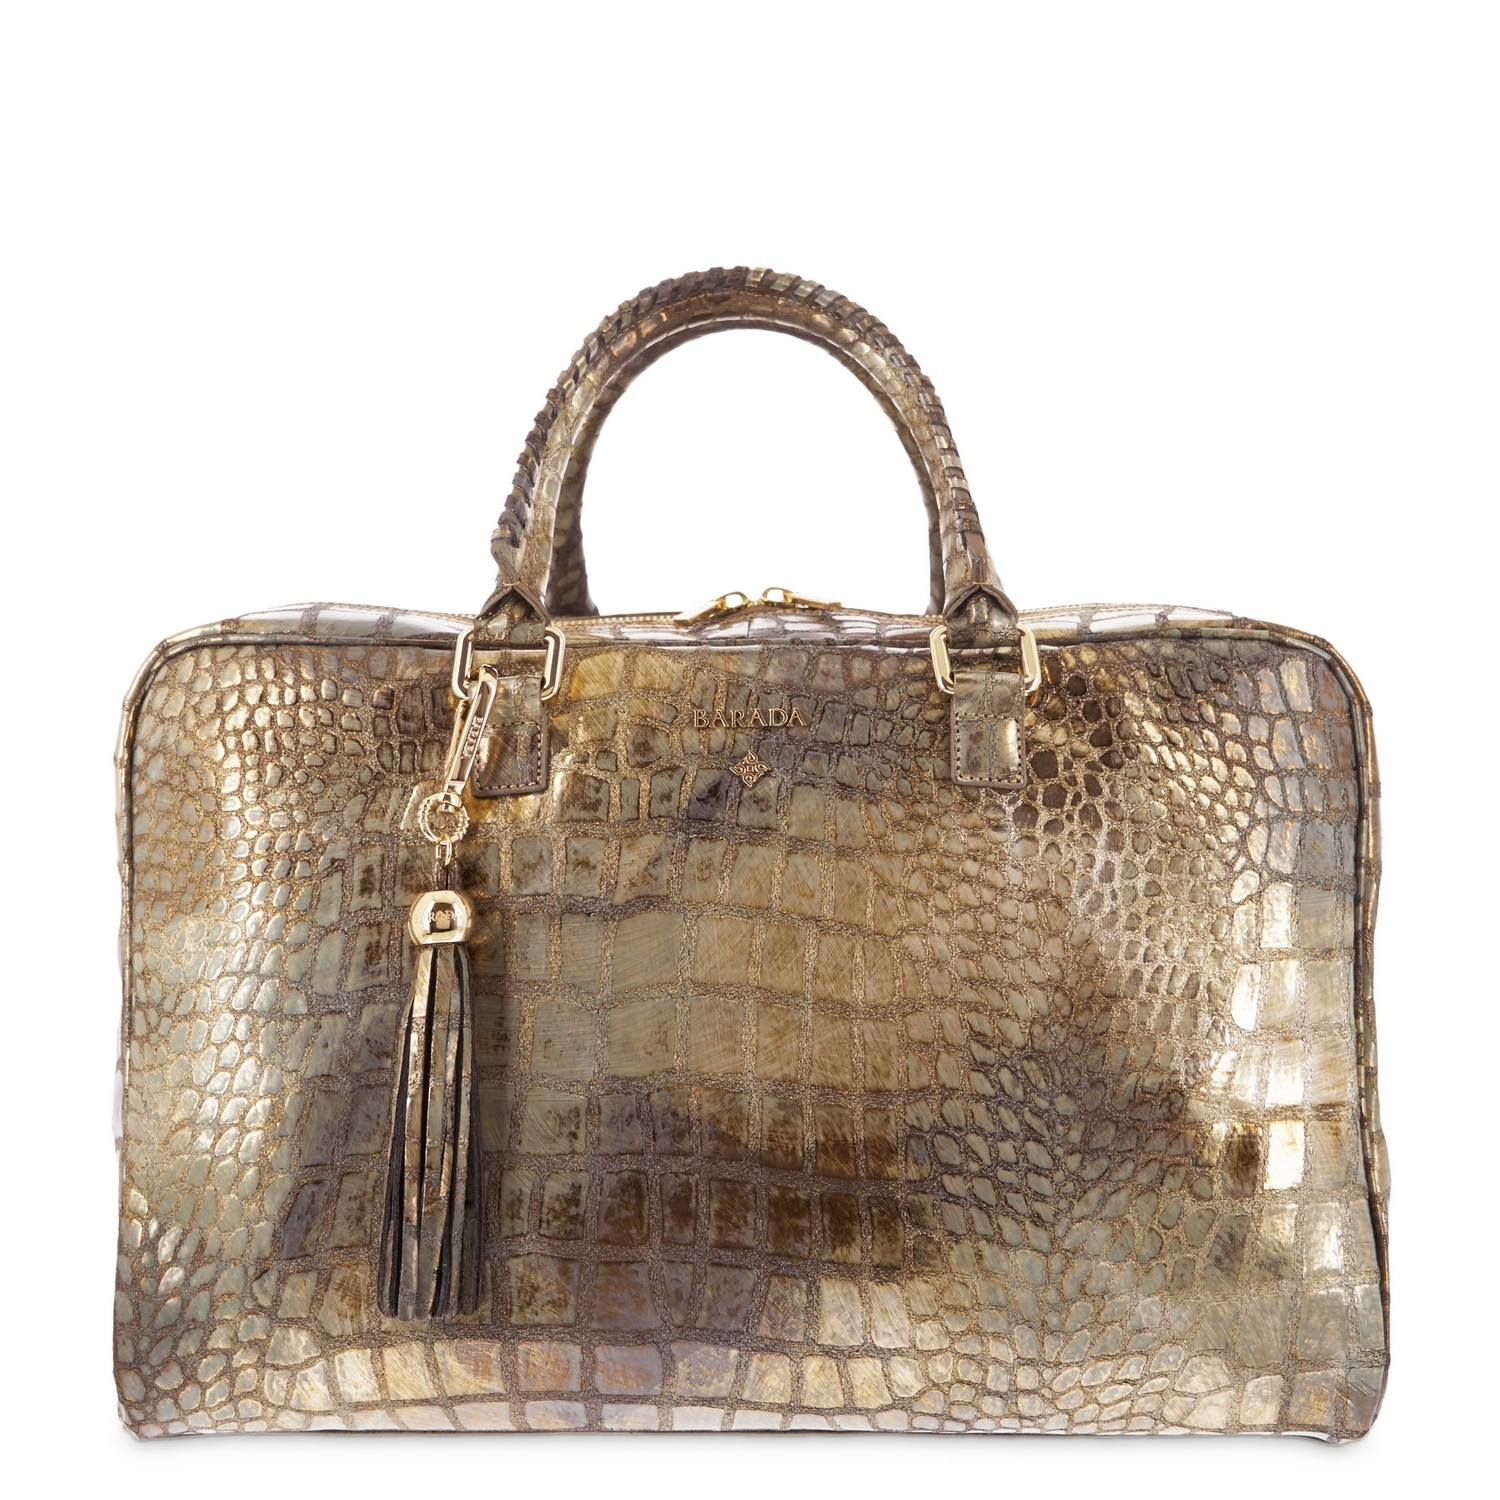 soft briefcase from moira collection in calf croc print metallic